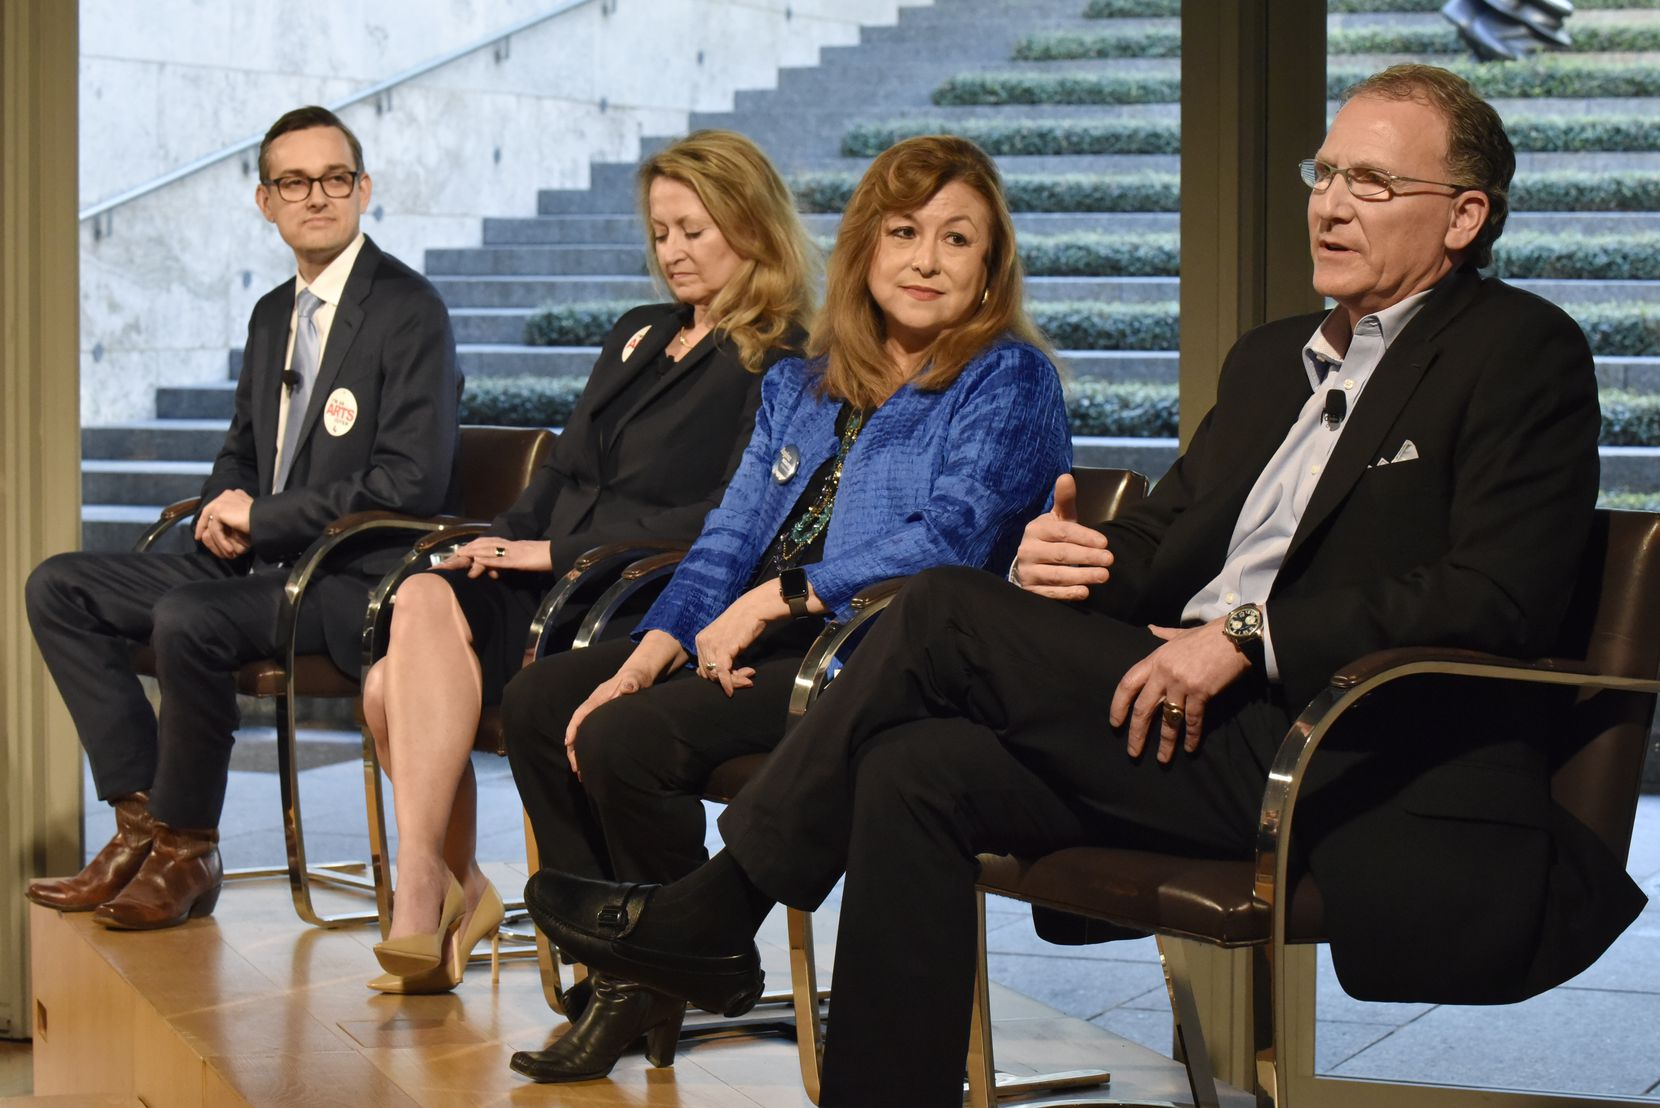 Mayoral candidates Scott Griggs (from left) Lynn McBee, Regina Montoya and Mike Ablon spoke about the issues facing the Dallas arts community at the Nasher Sculpture Center on Monday.